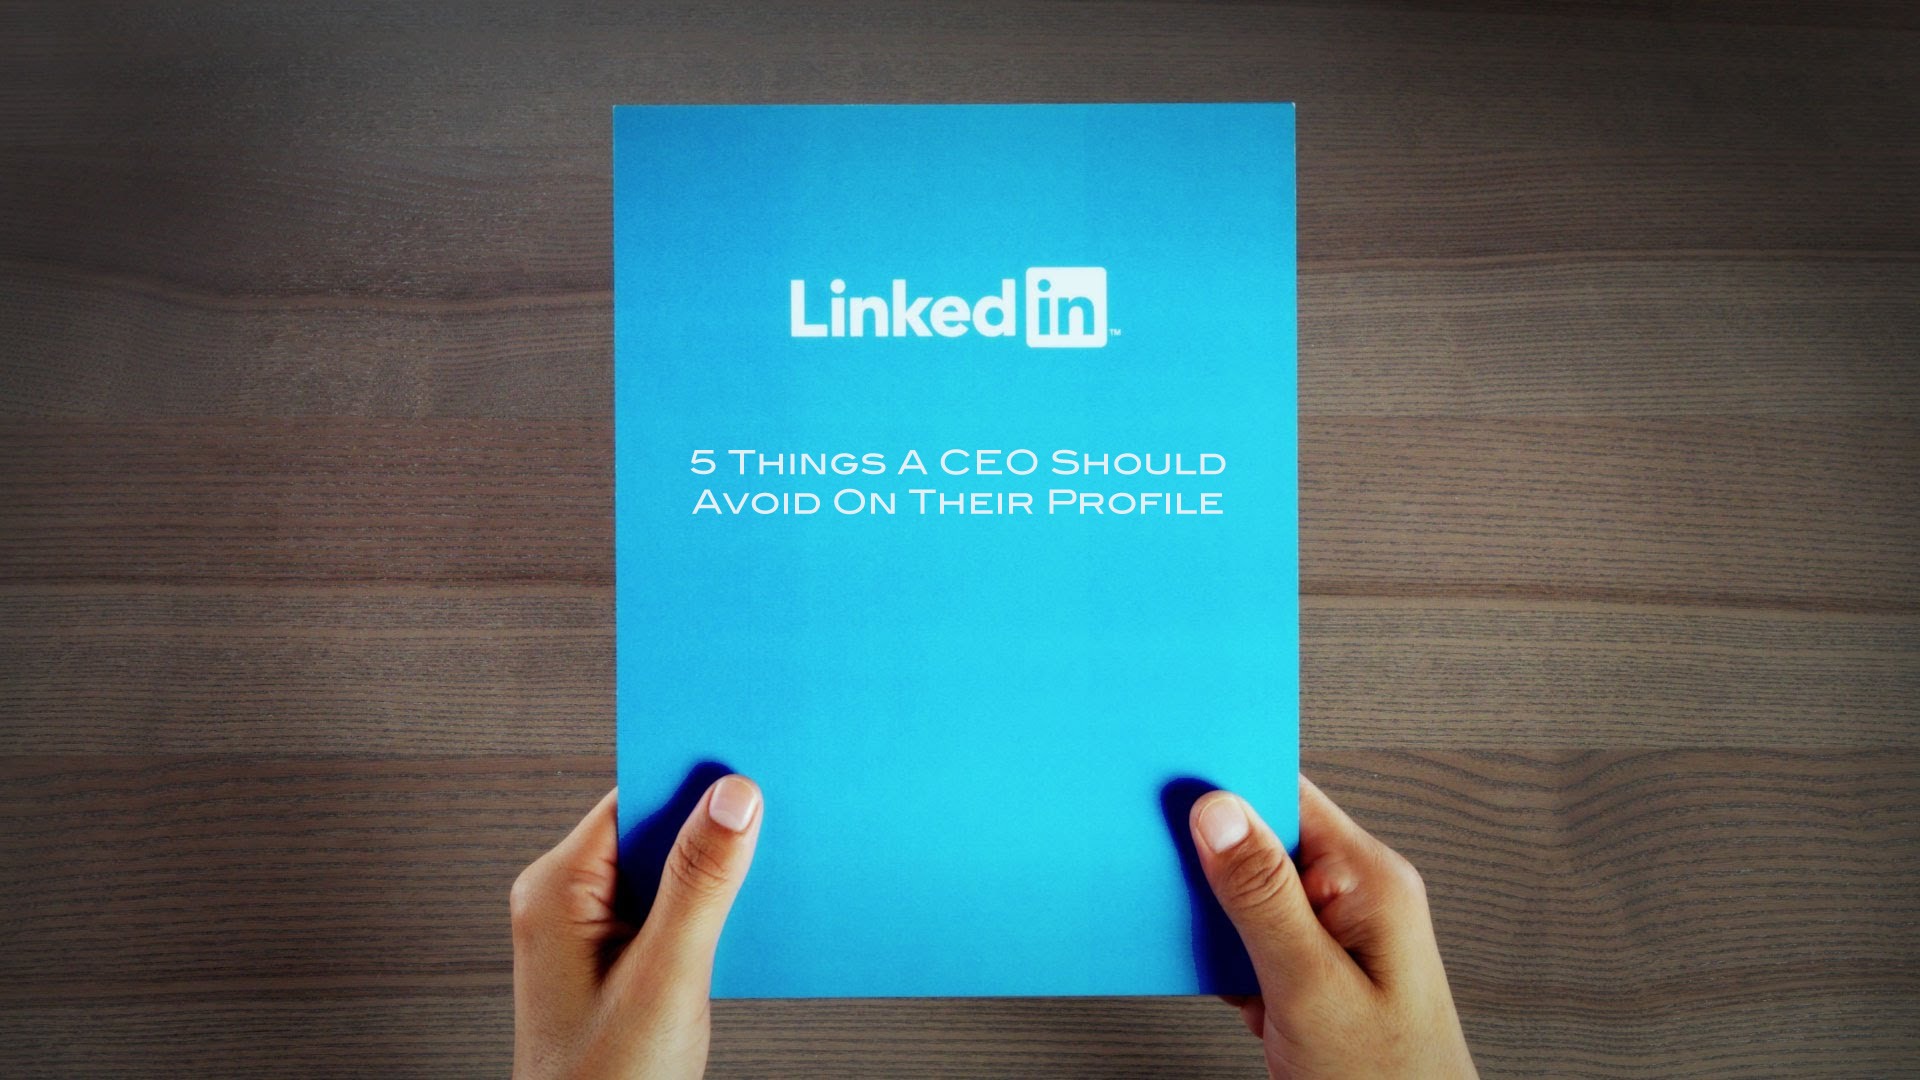 5 Things A CEO Should Avoid On Their LinkedIn Profile